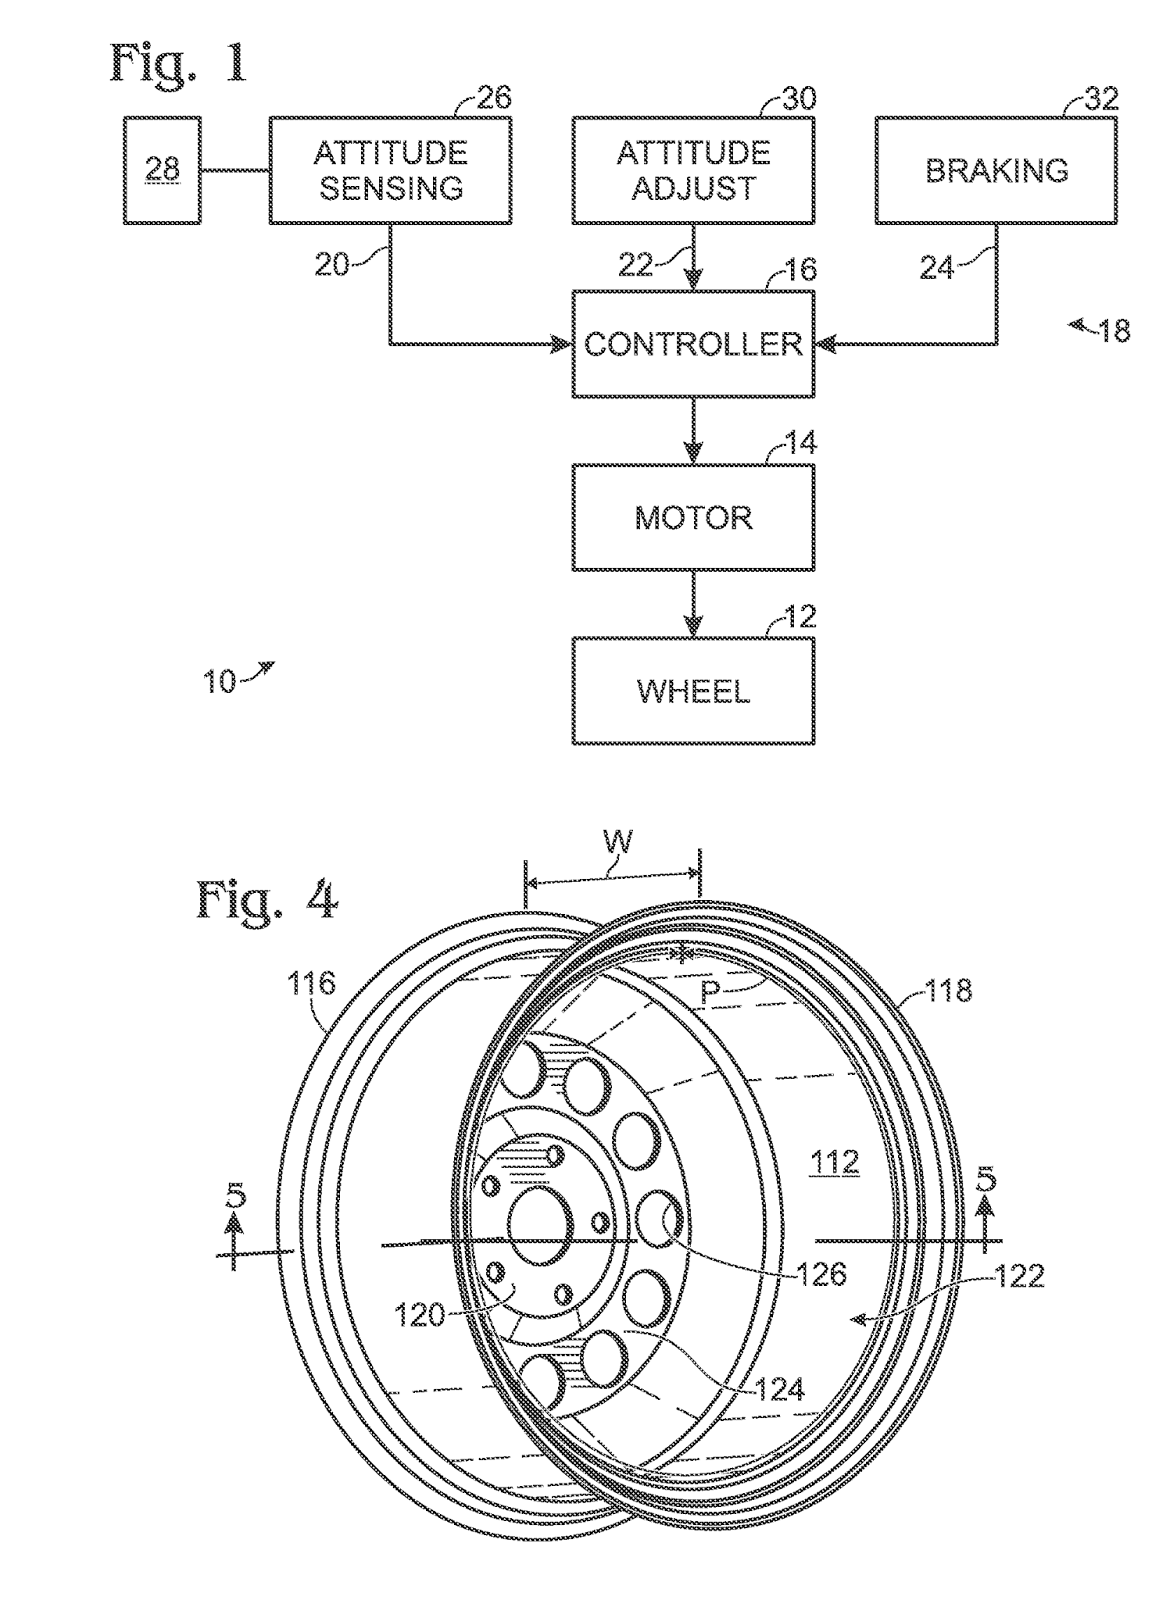 THE PATENT SEARCH BLOG: March 2014